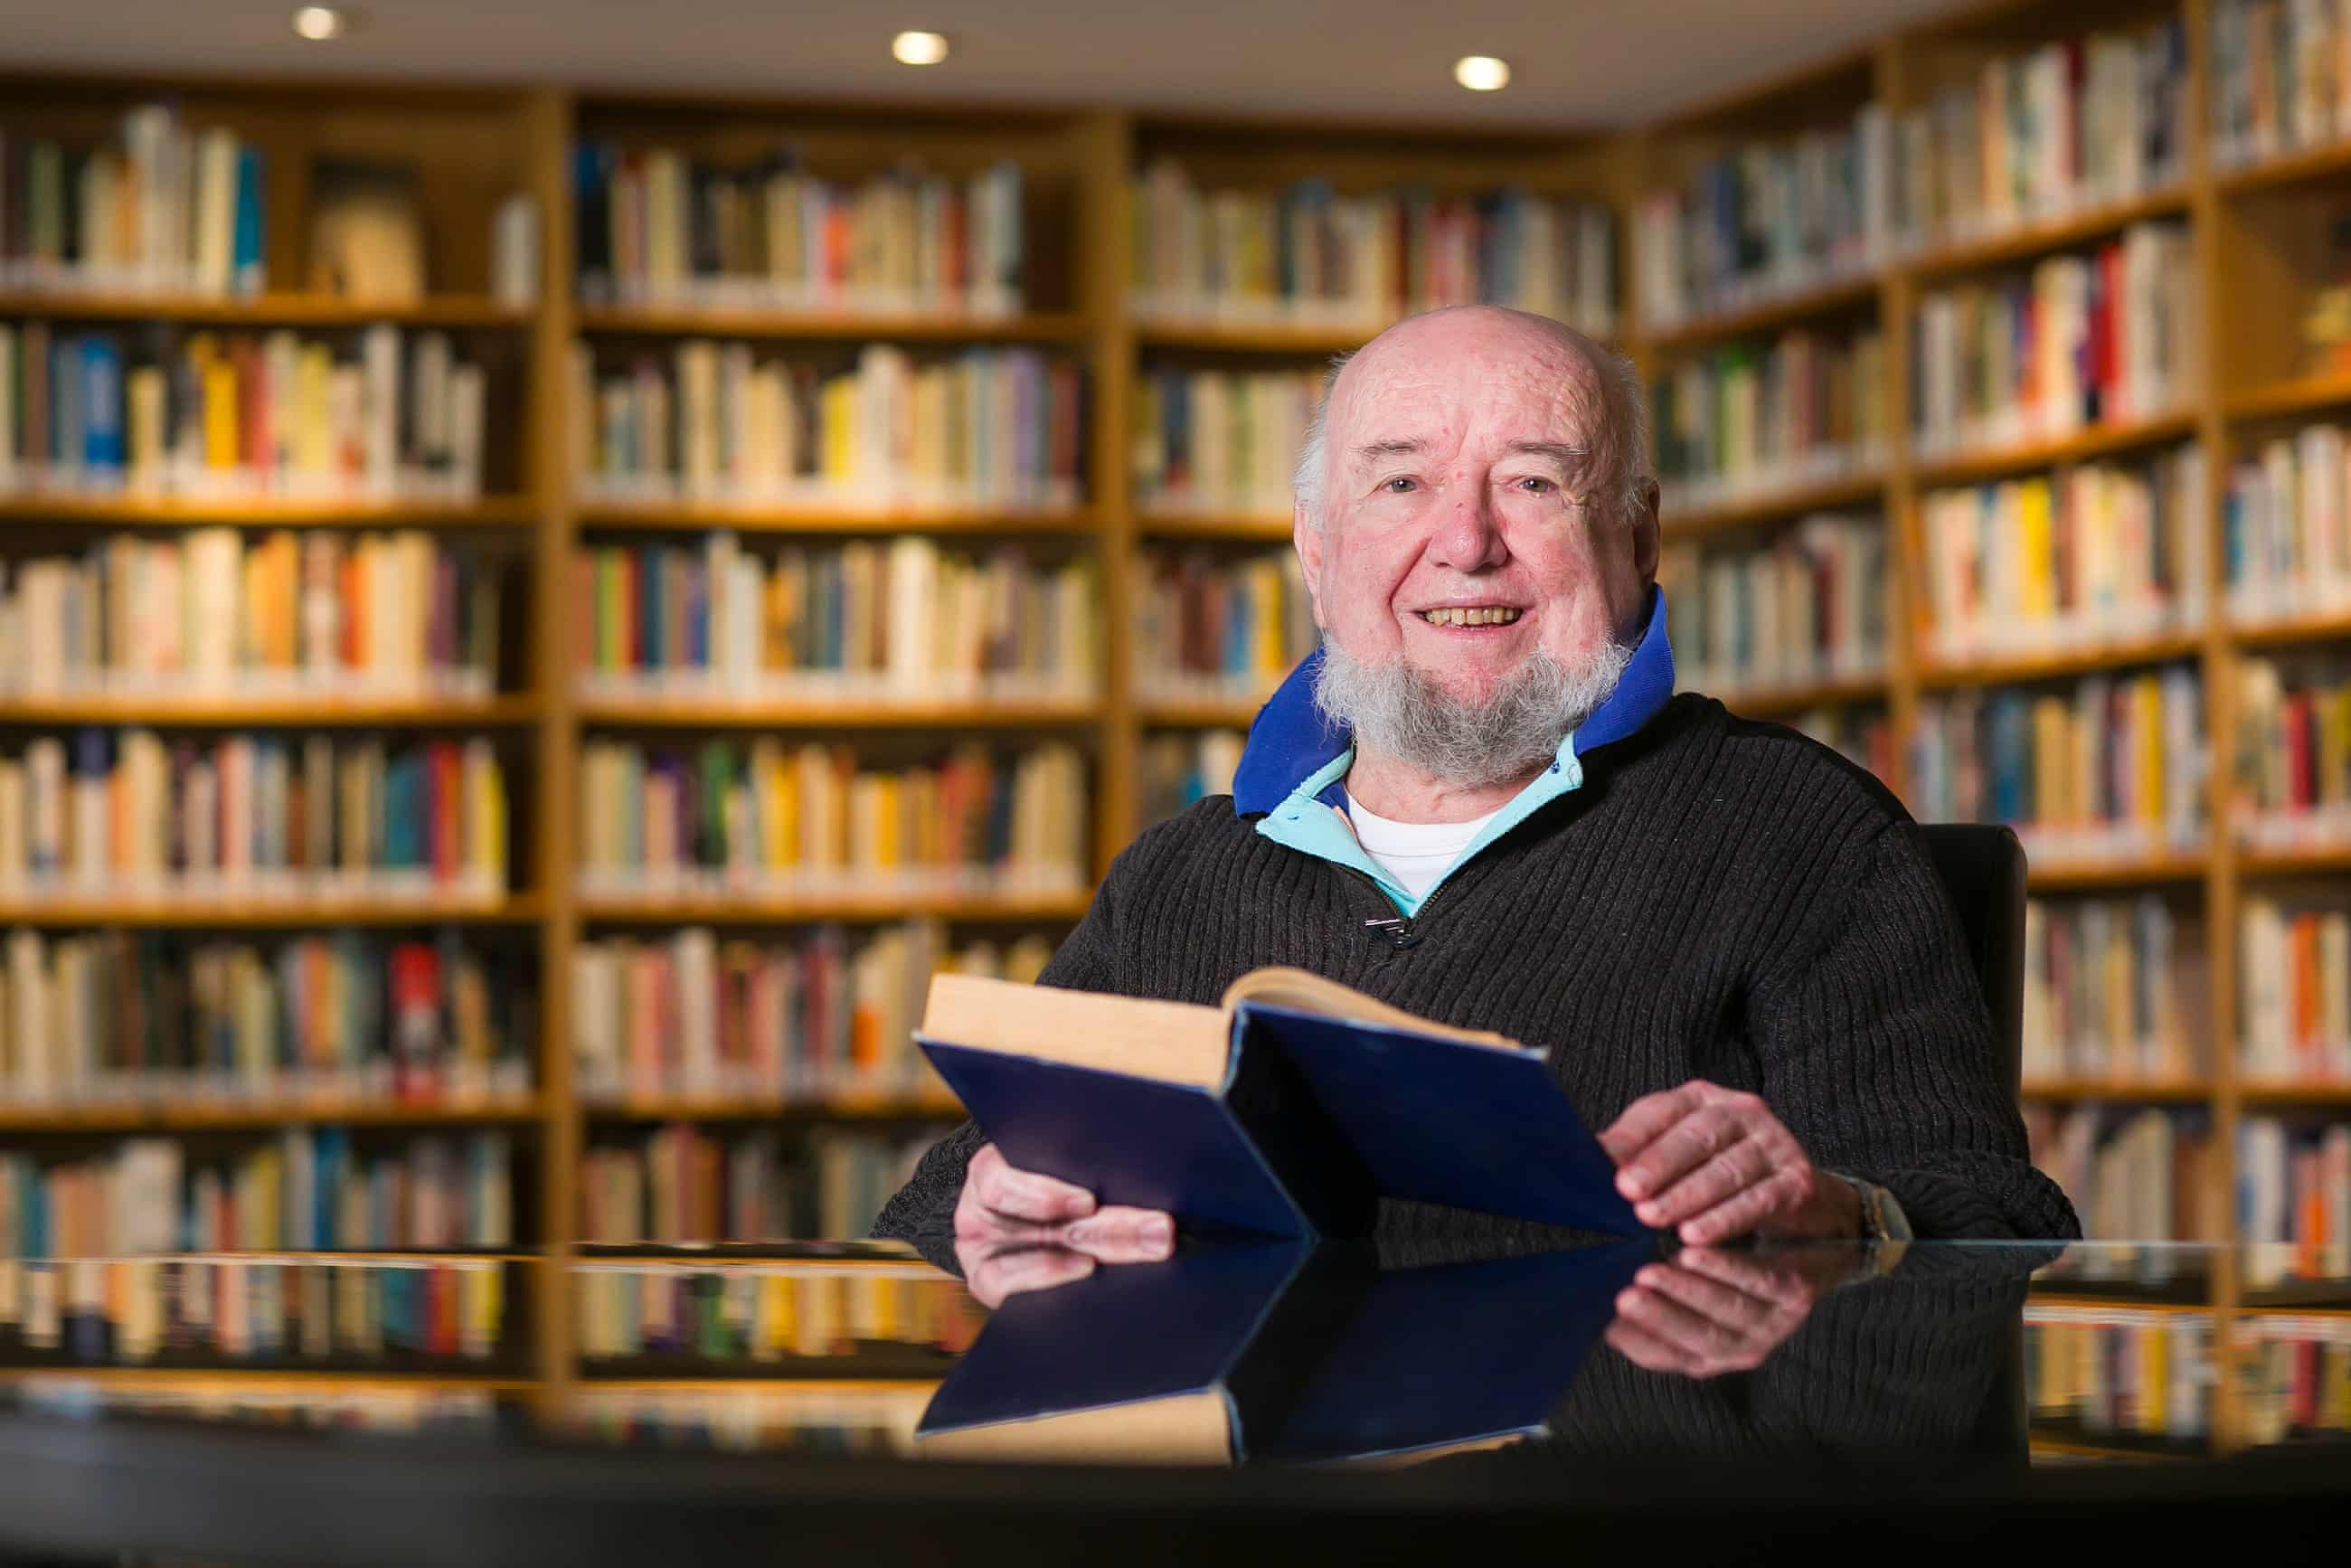 Thomas Keneally: Death Is Not The fly In The Cosmic Ointment. It Is The Cosmic Ointment by Thomas Keneally for The Guardian